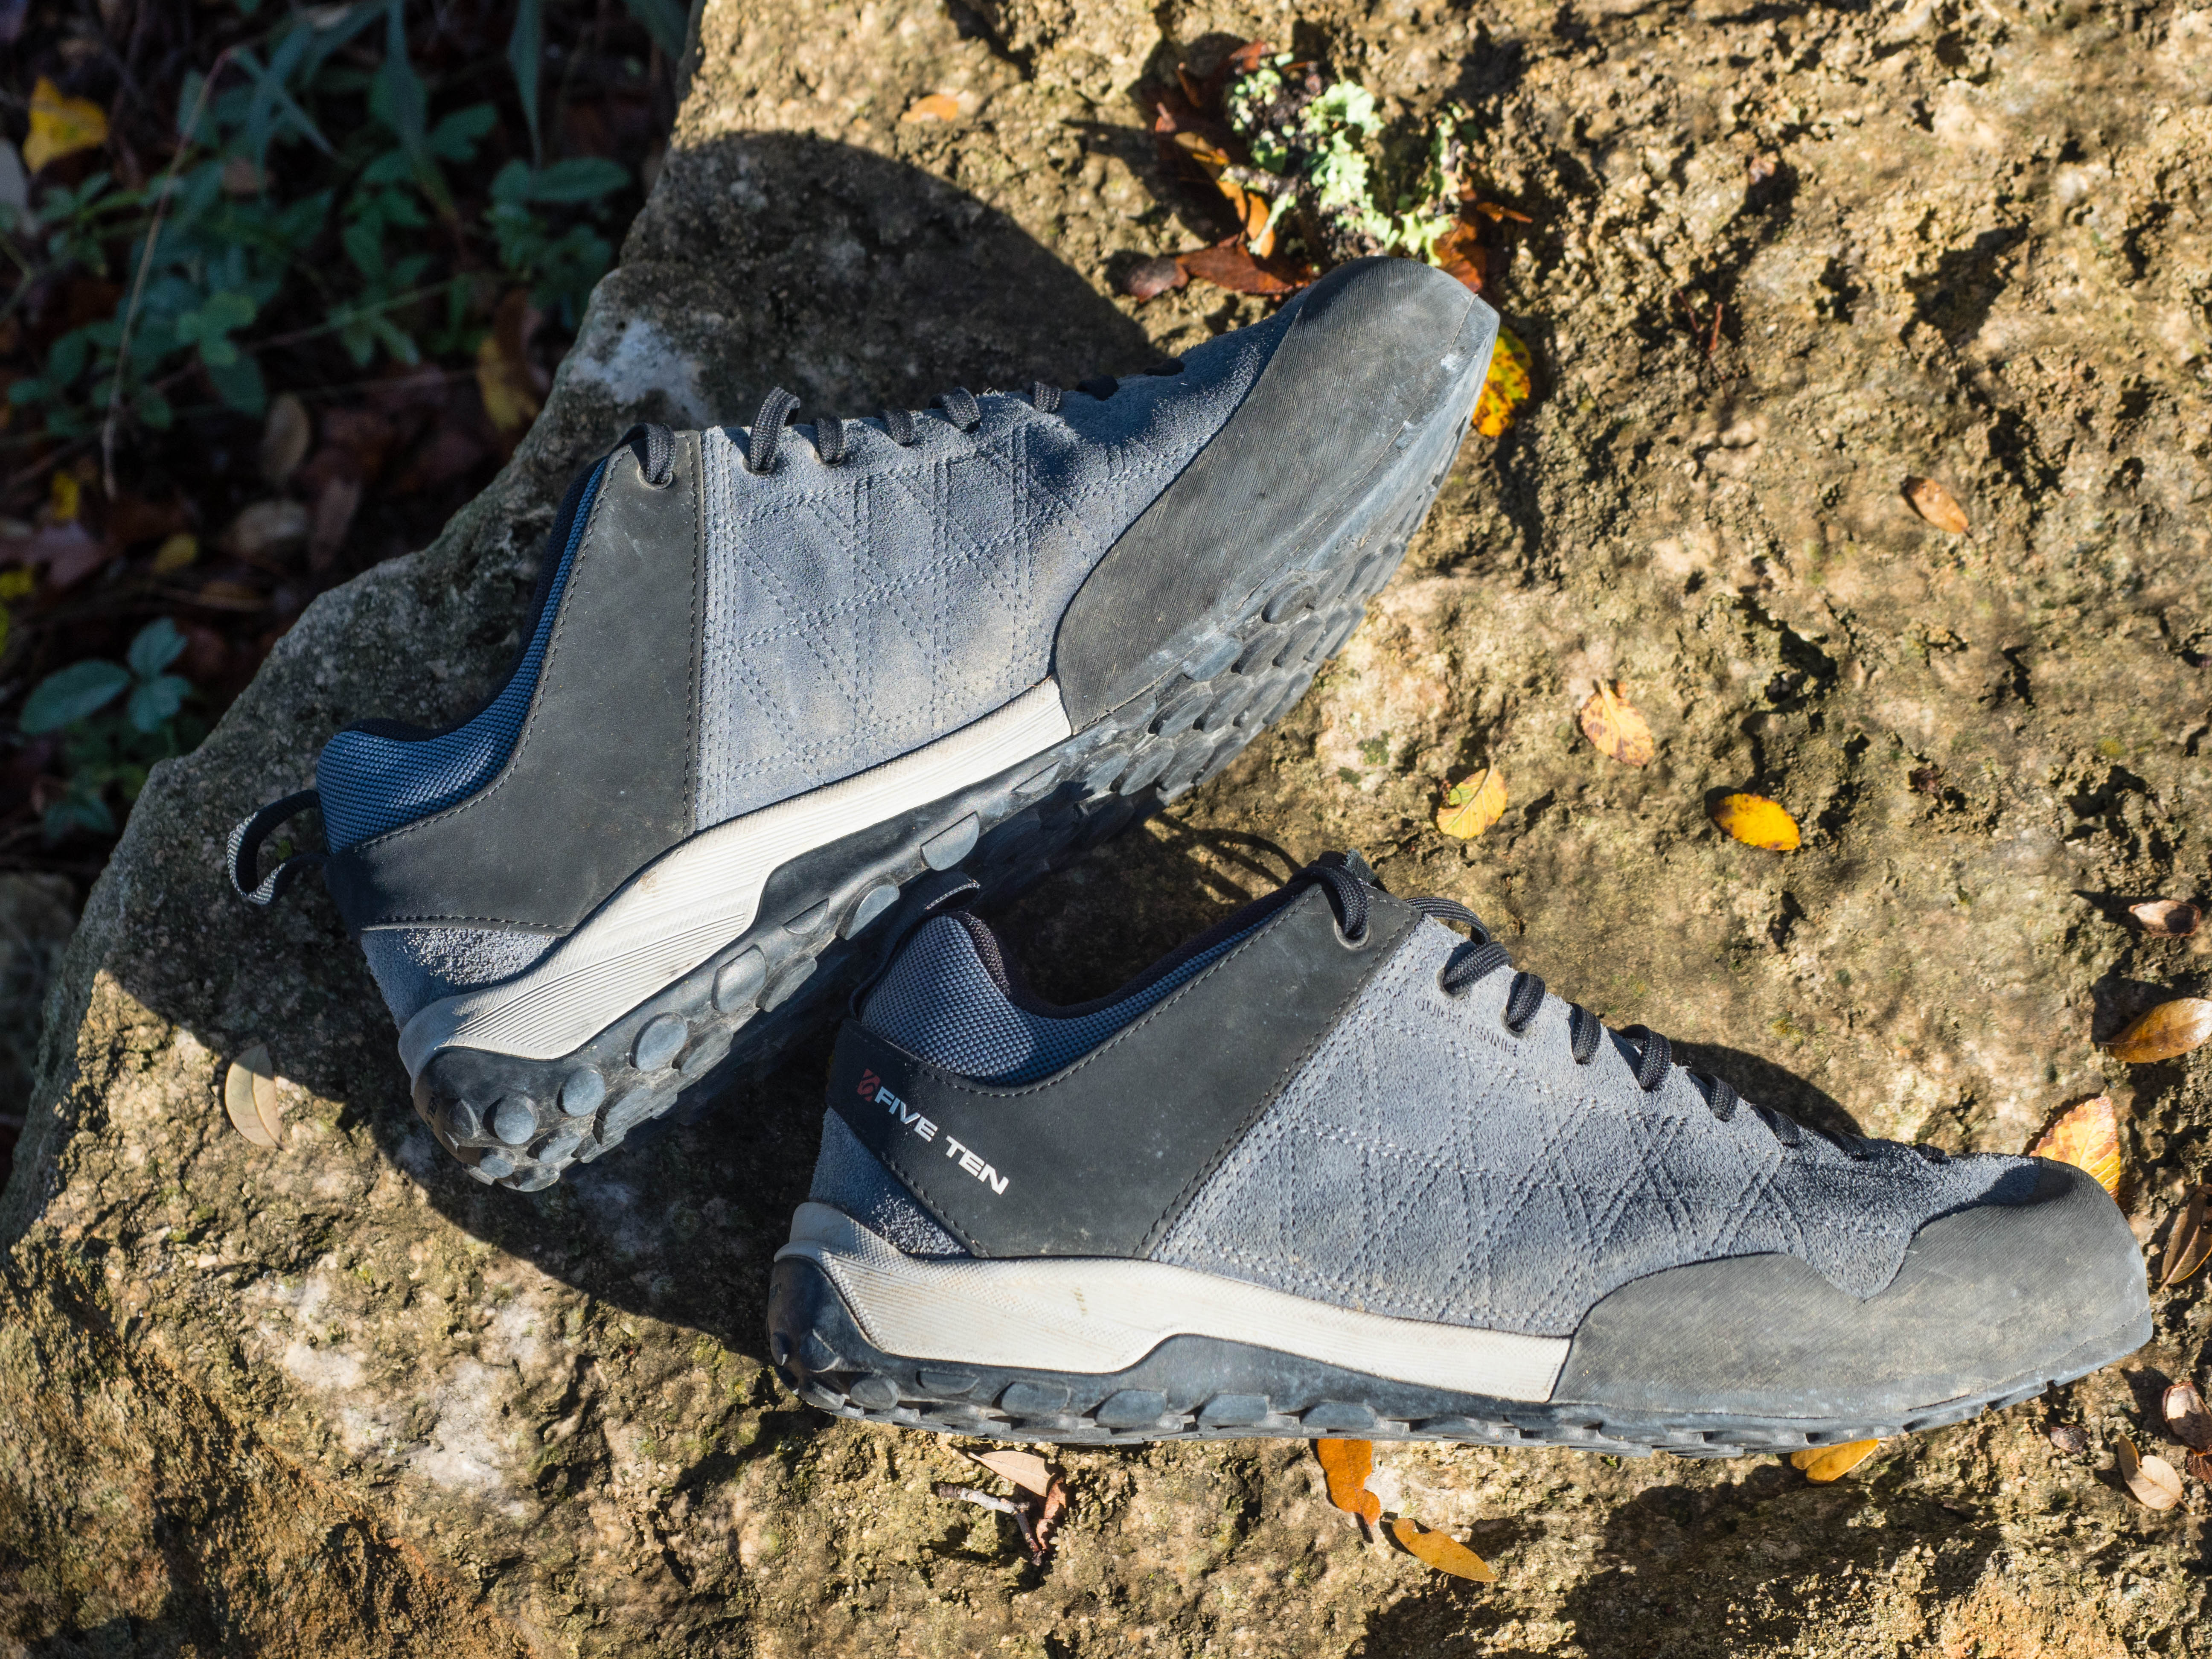 ef904db8c75 One Shoe To Hike and Climb  Five Ten Guide Tennie Review